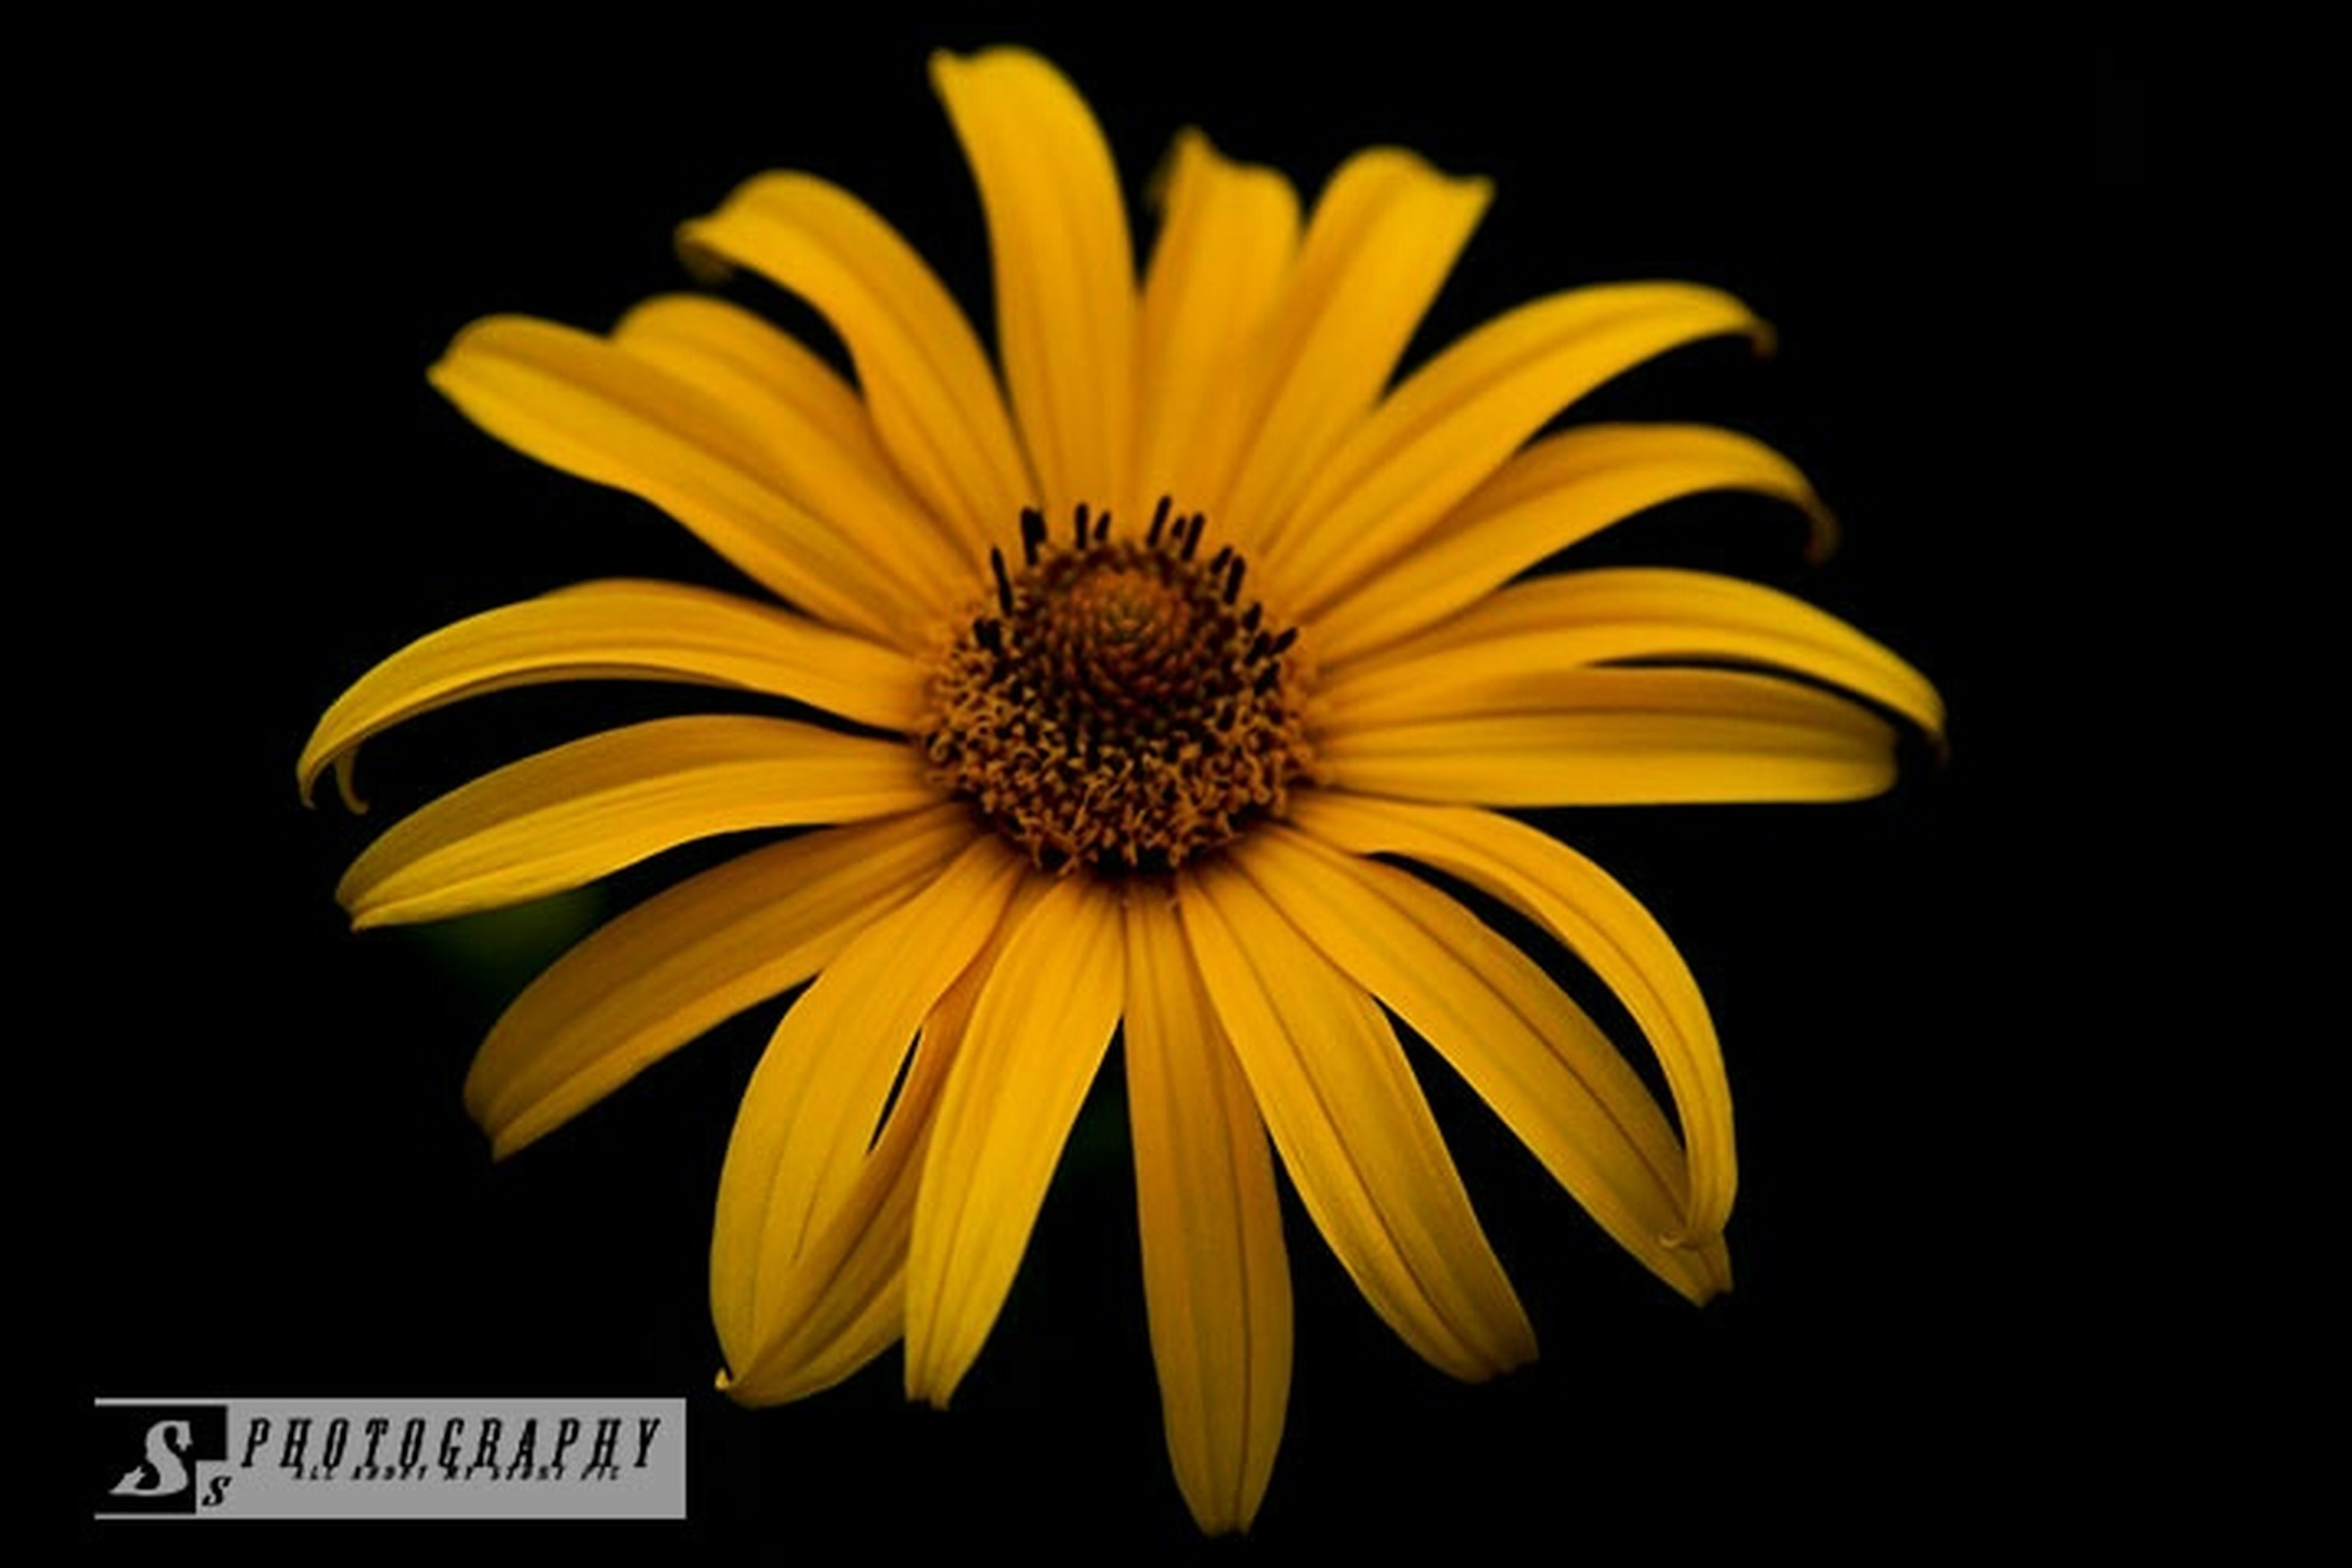 flower, petal, yellow, flower head, freshness, fragility, black background, studio shot, beauty in nature, close-up, pollen, single flower, nature, growth, daisy, blooming, focus on foreground, plant, no people, in bloom